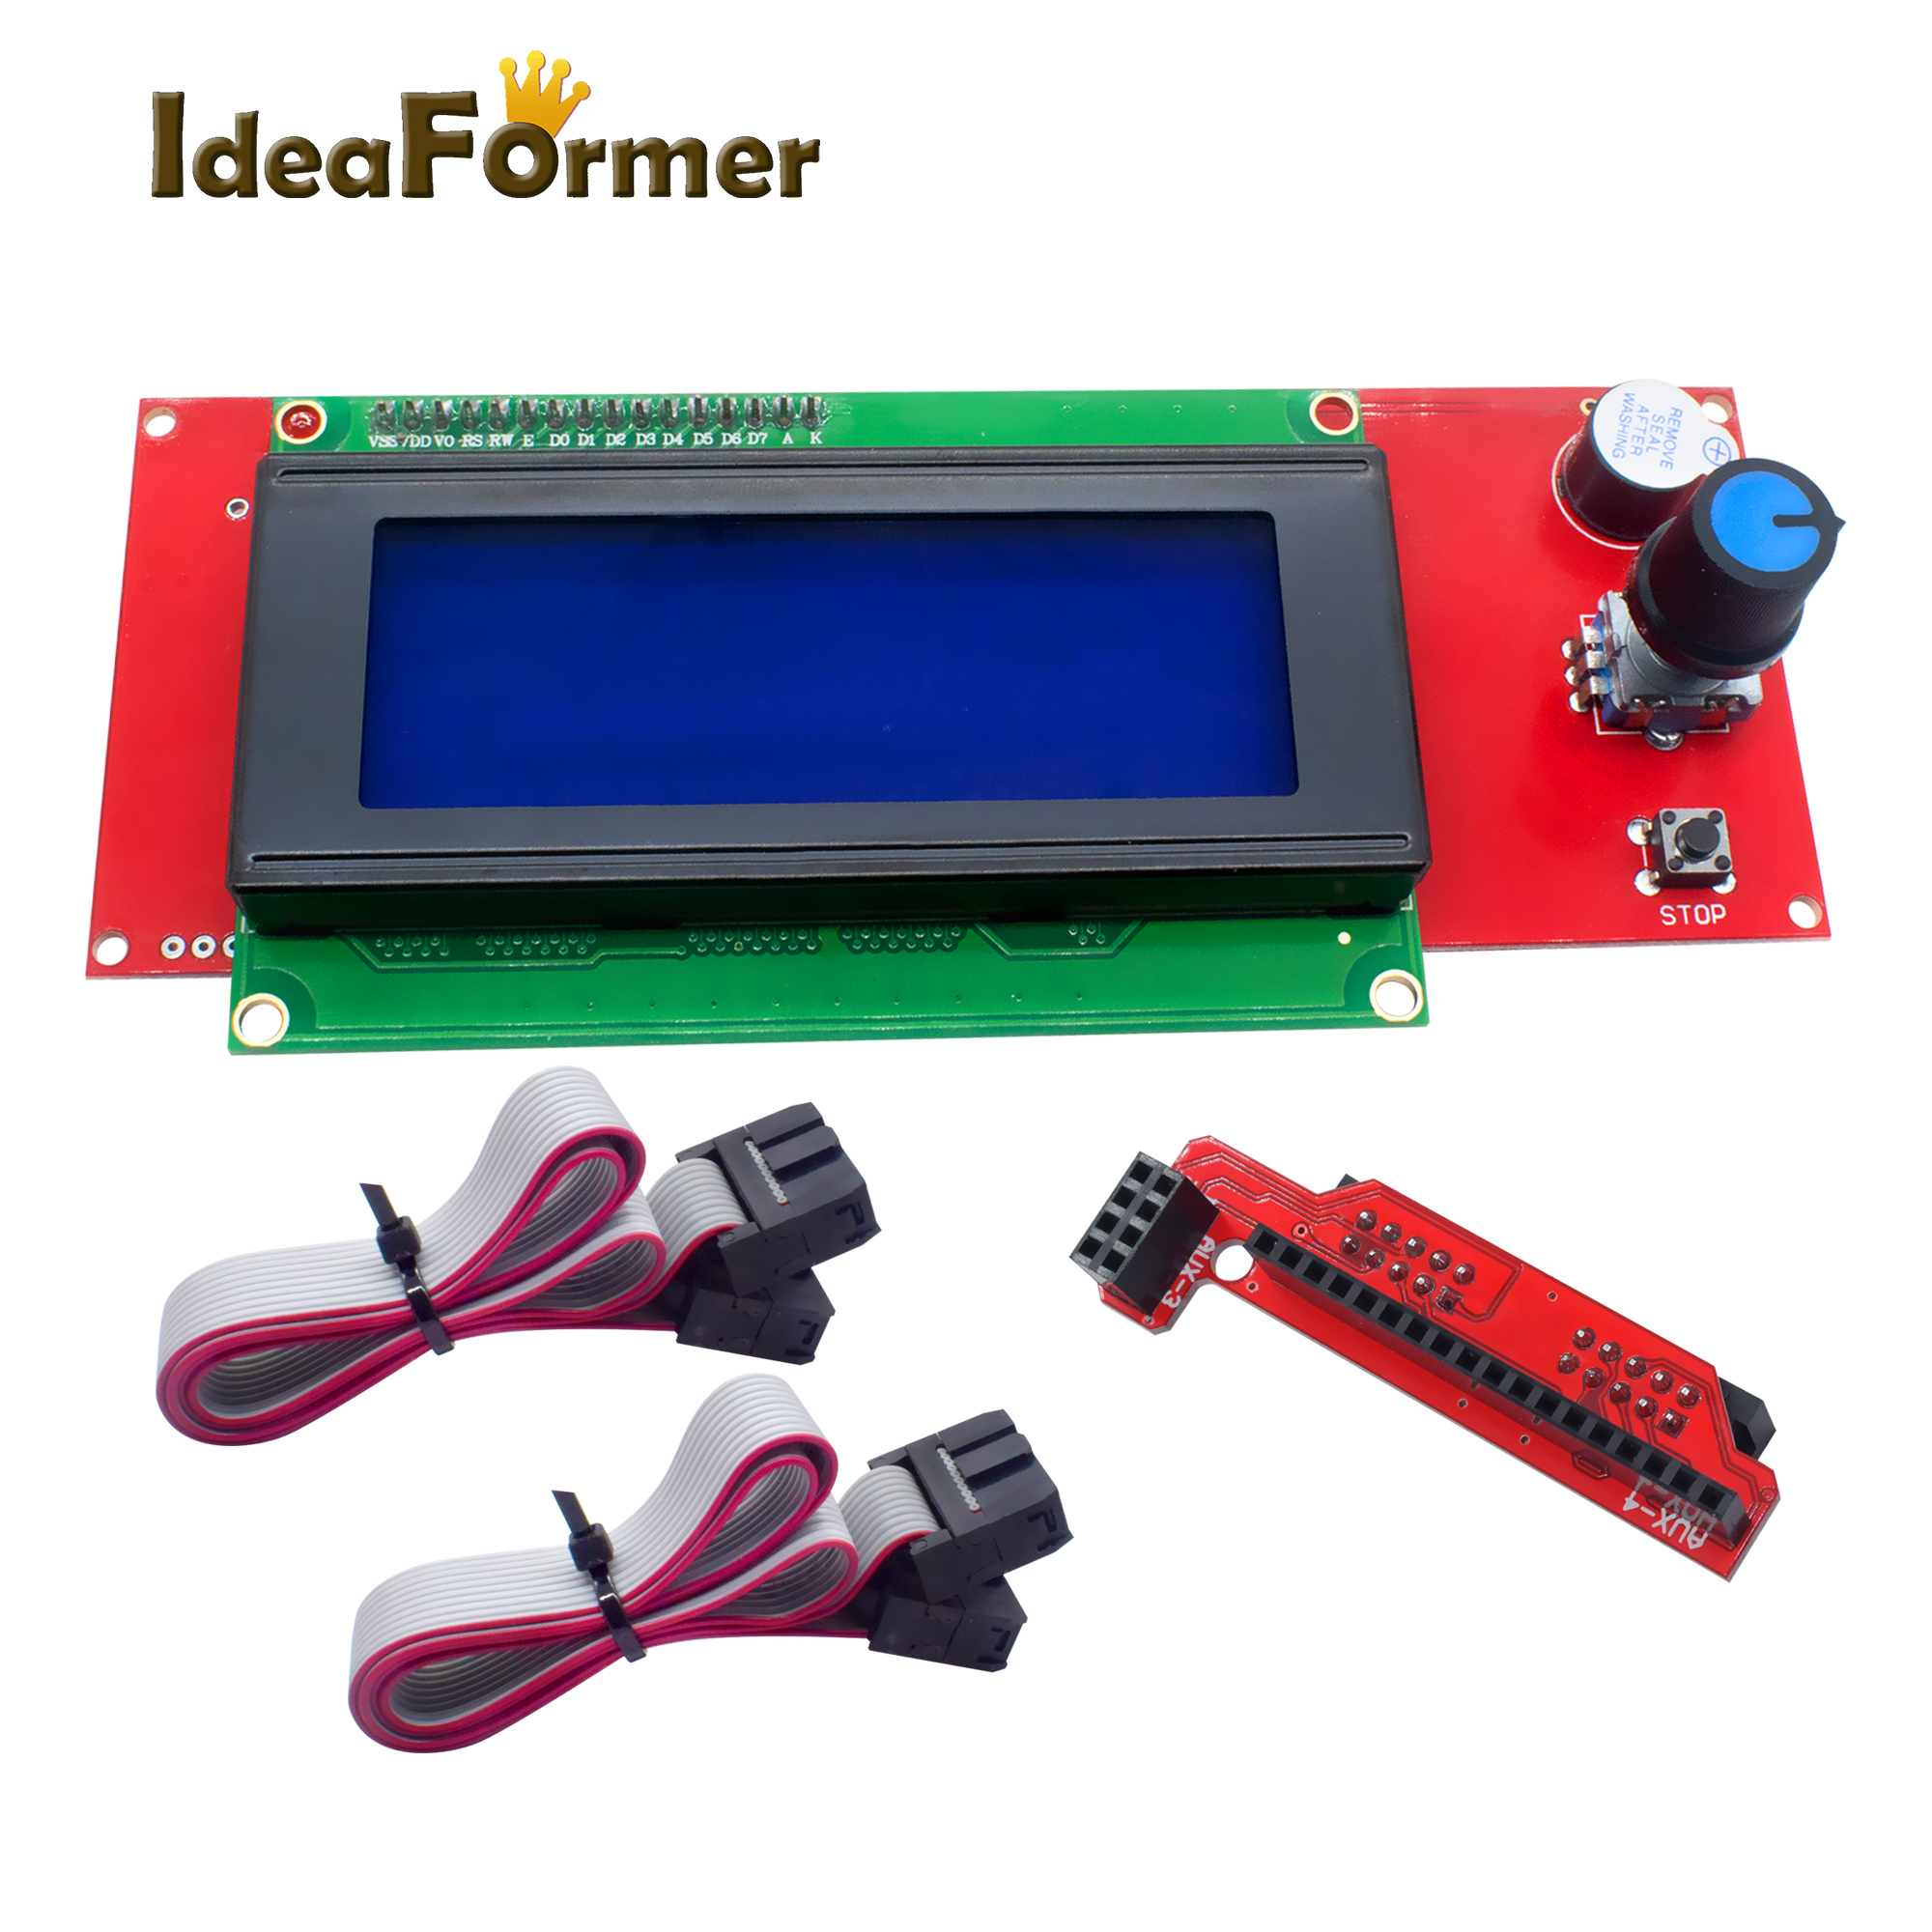 2004 LCD Display 3D Printer Reprap Smart Adapter Controller Reprap Ramps 1.4 1.6 Mega2560 Board 2004LCD With Cable Controller